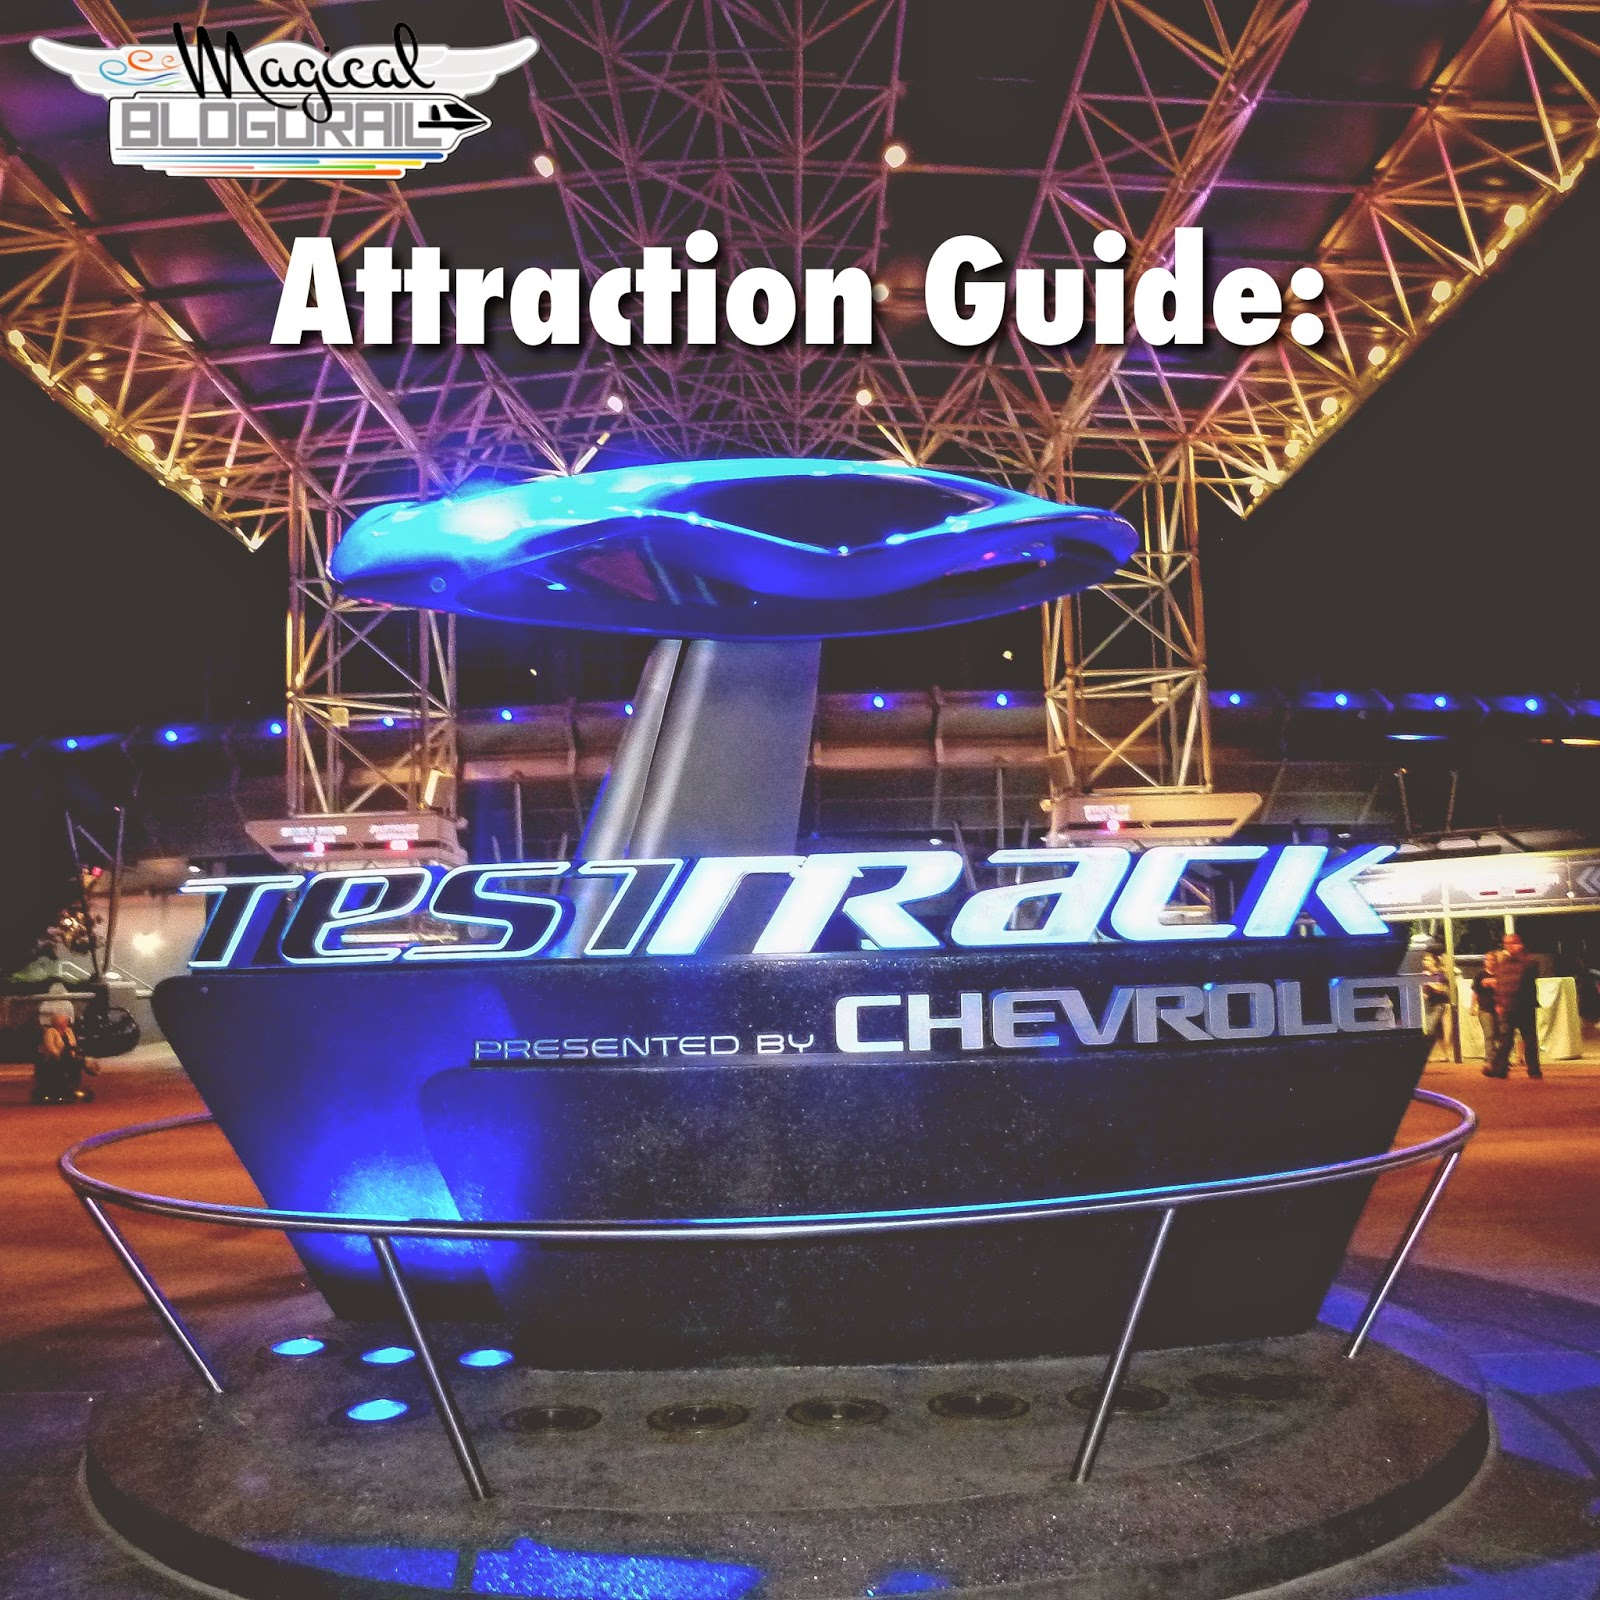 Attraction Guide: Test Track from the Magical Blogorail